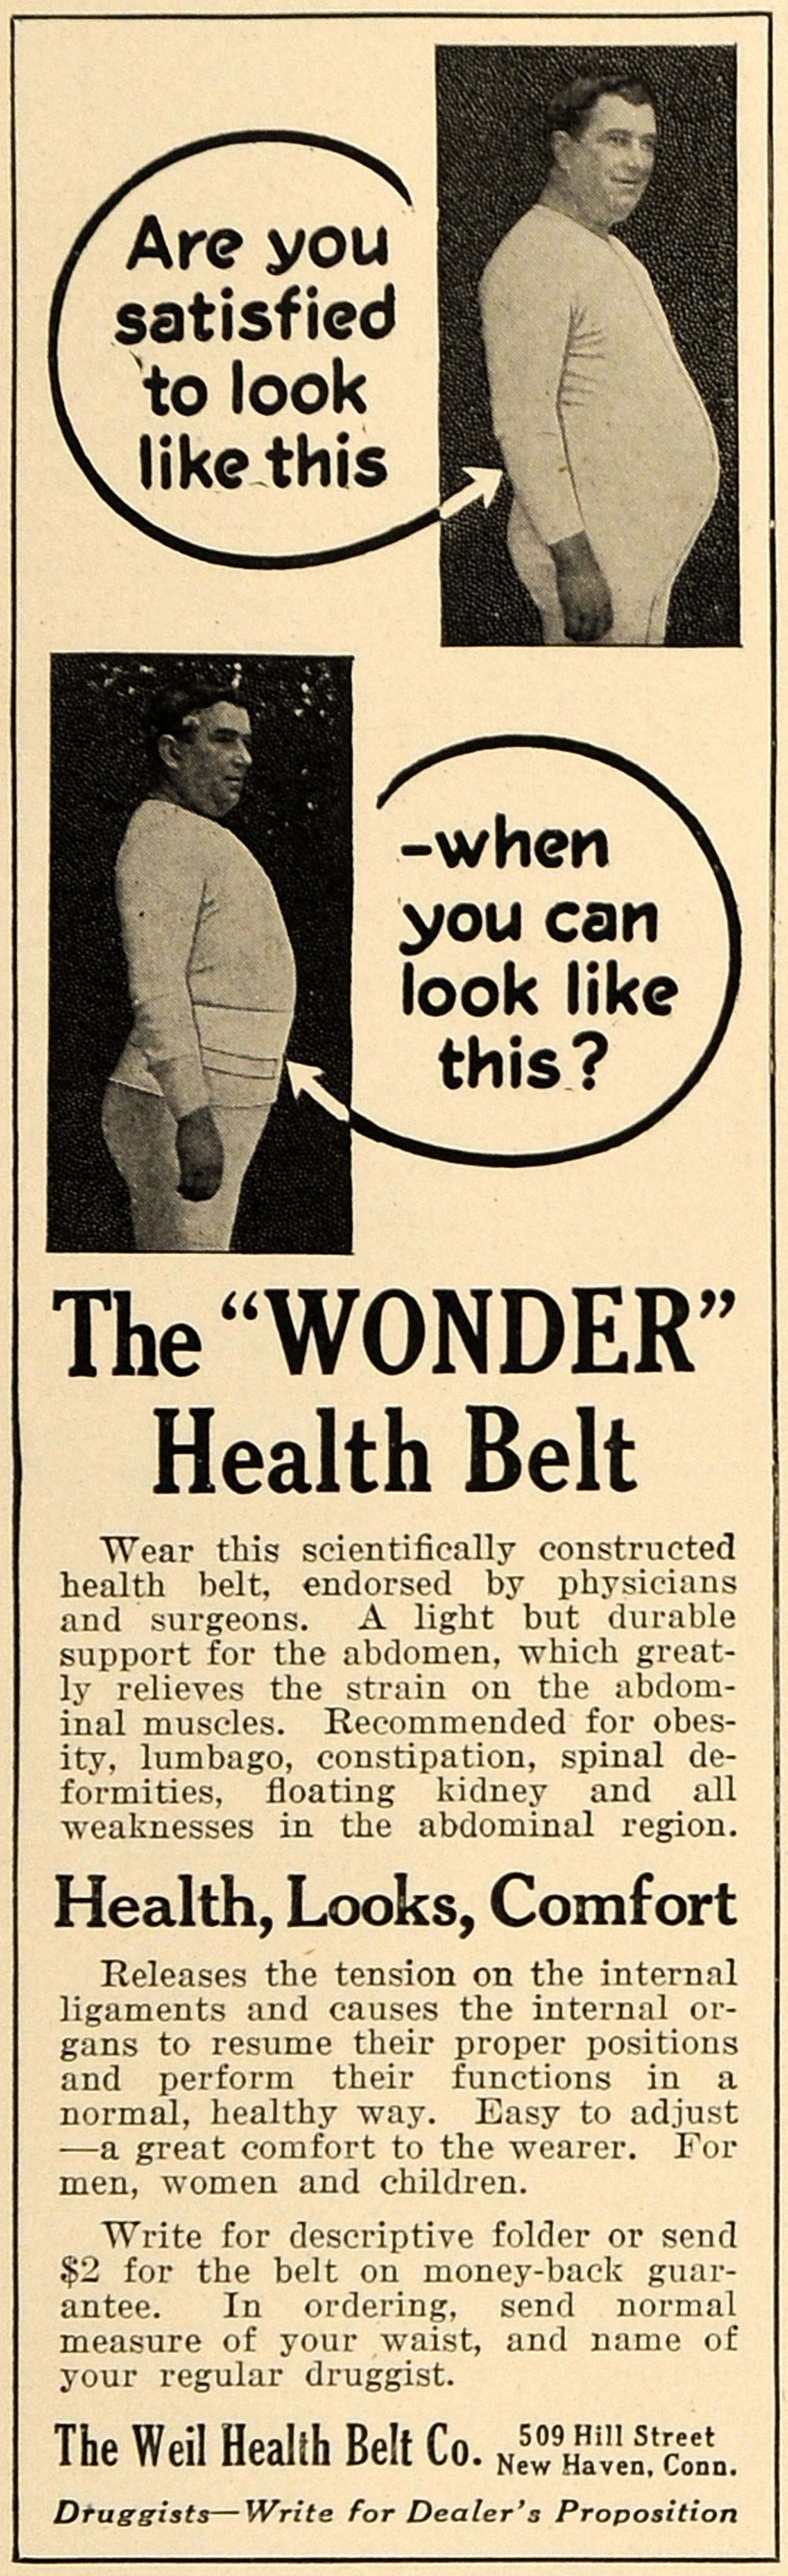 1916 Ad Weil Health Belt Company Floating Kidney Health - ORIGINAL TIN2